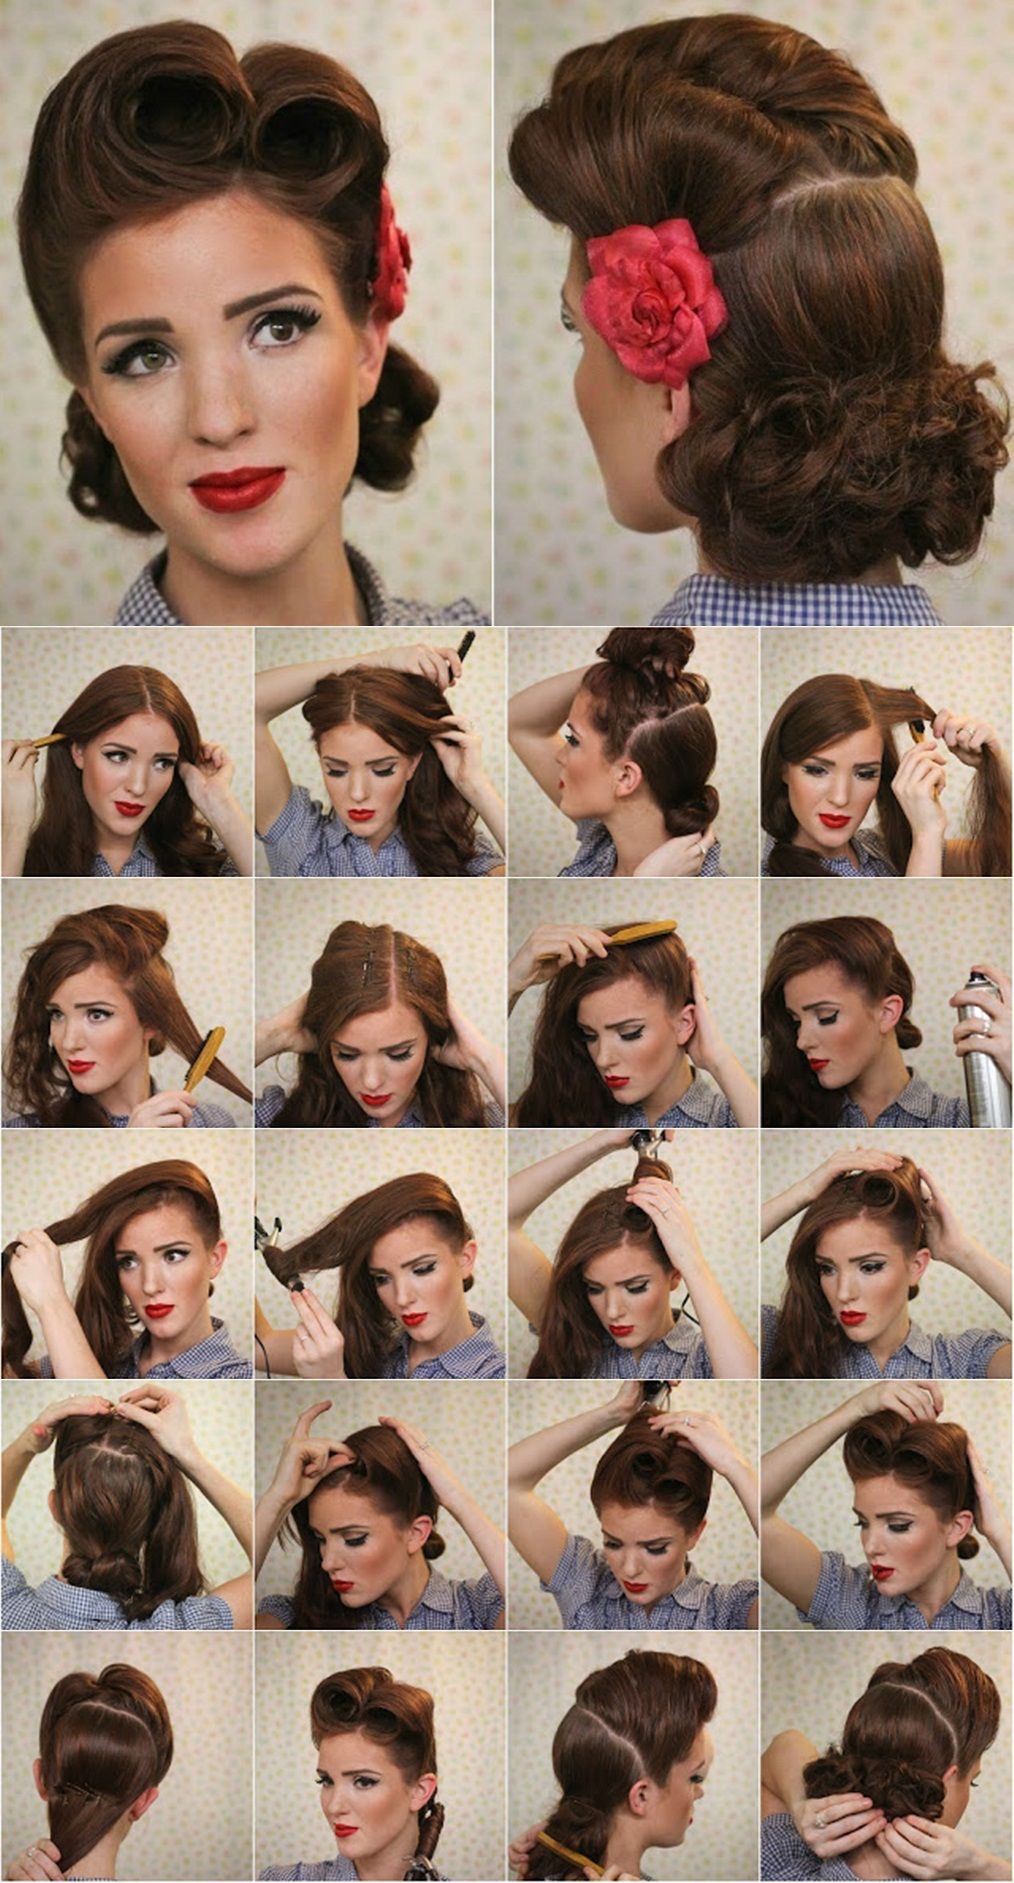 Pin By Becky Searcy On Wedding Hair Pinterest Victory Rolls